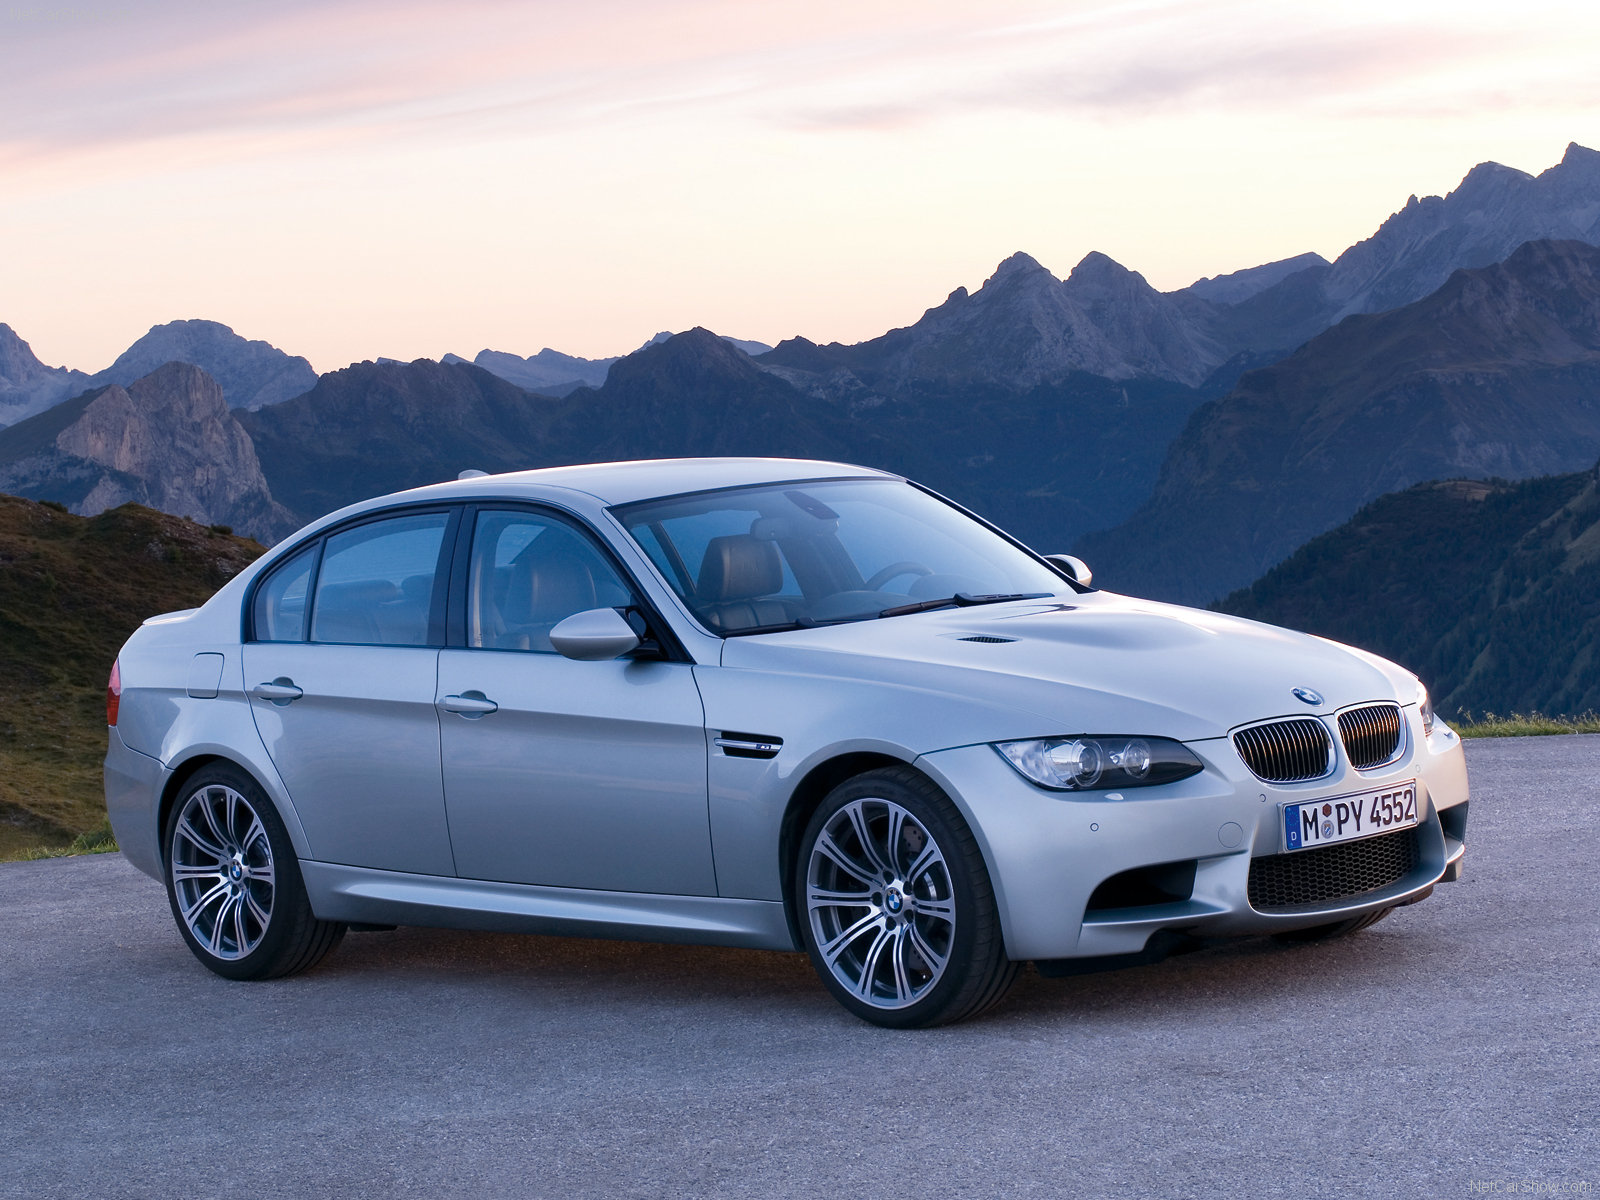 bmw m3 e90 sedan picture 48117 bmw photo gallery. Black Bedroom Furniture Sets. Home Design Ideas